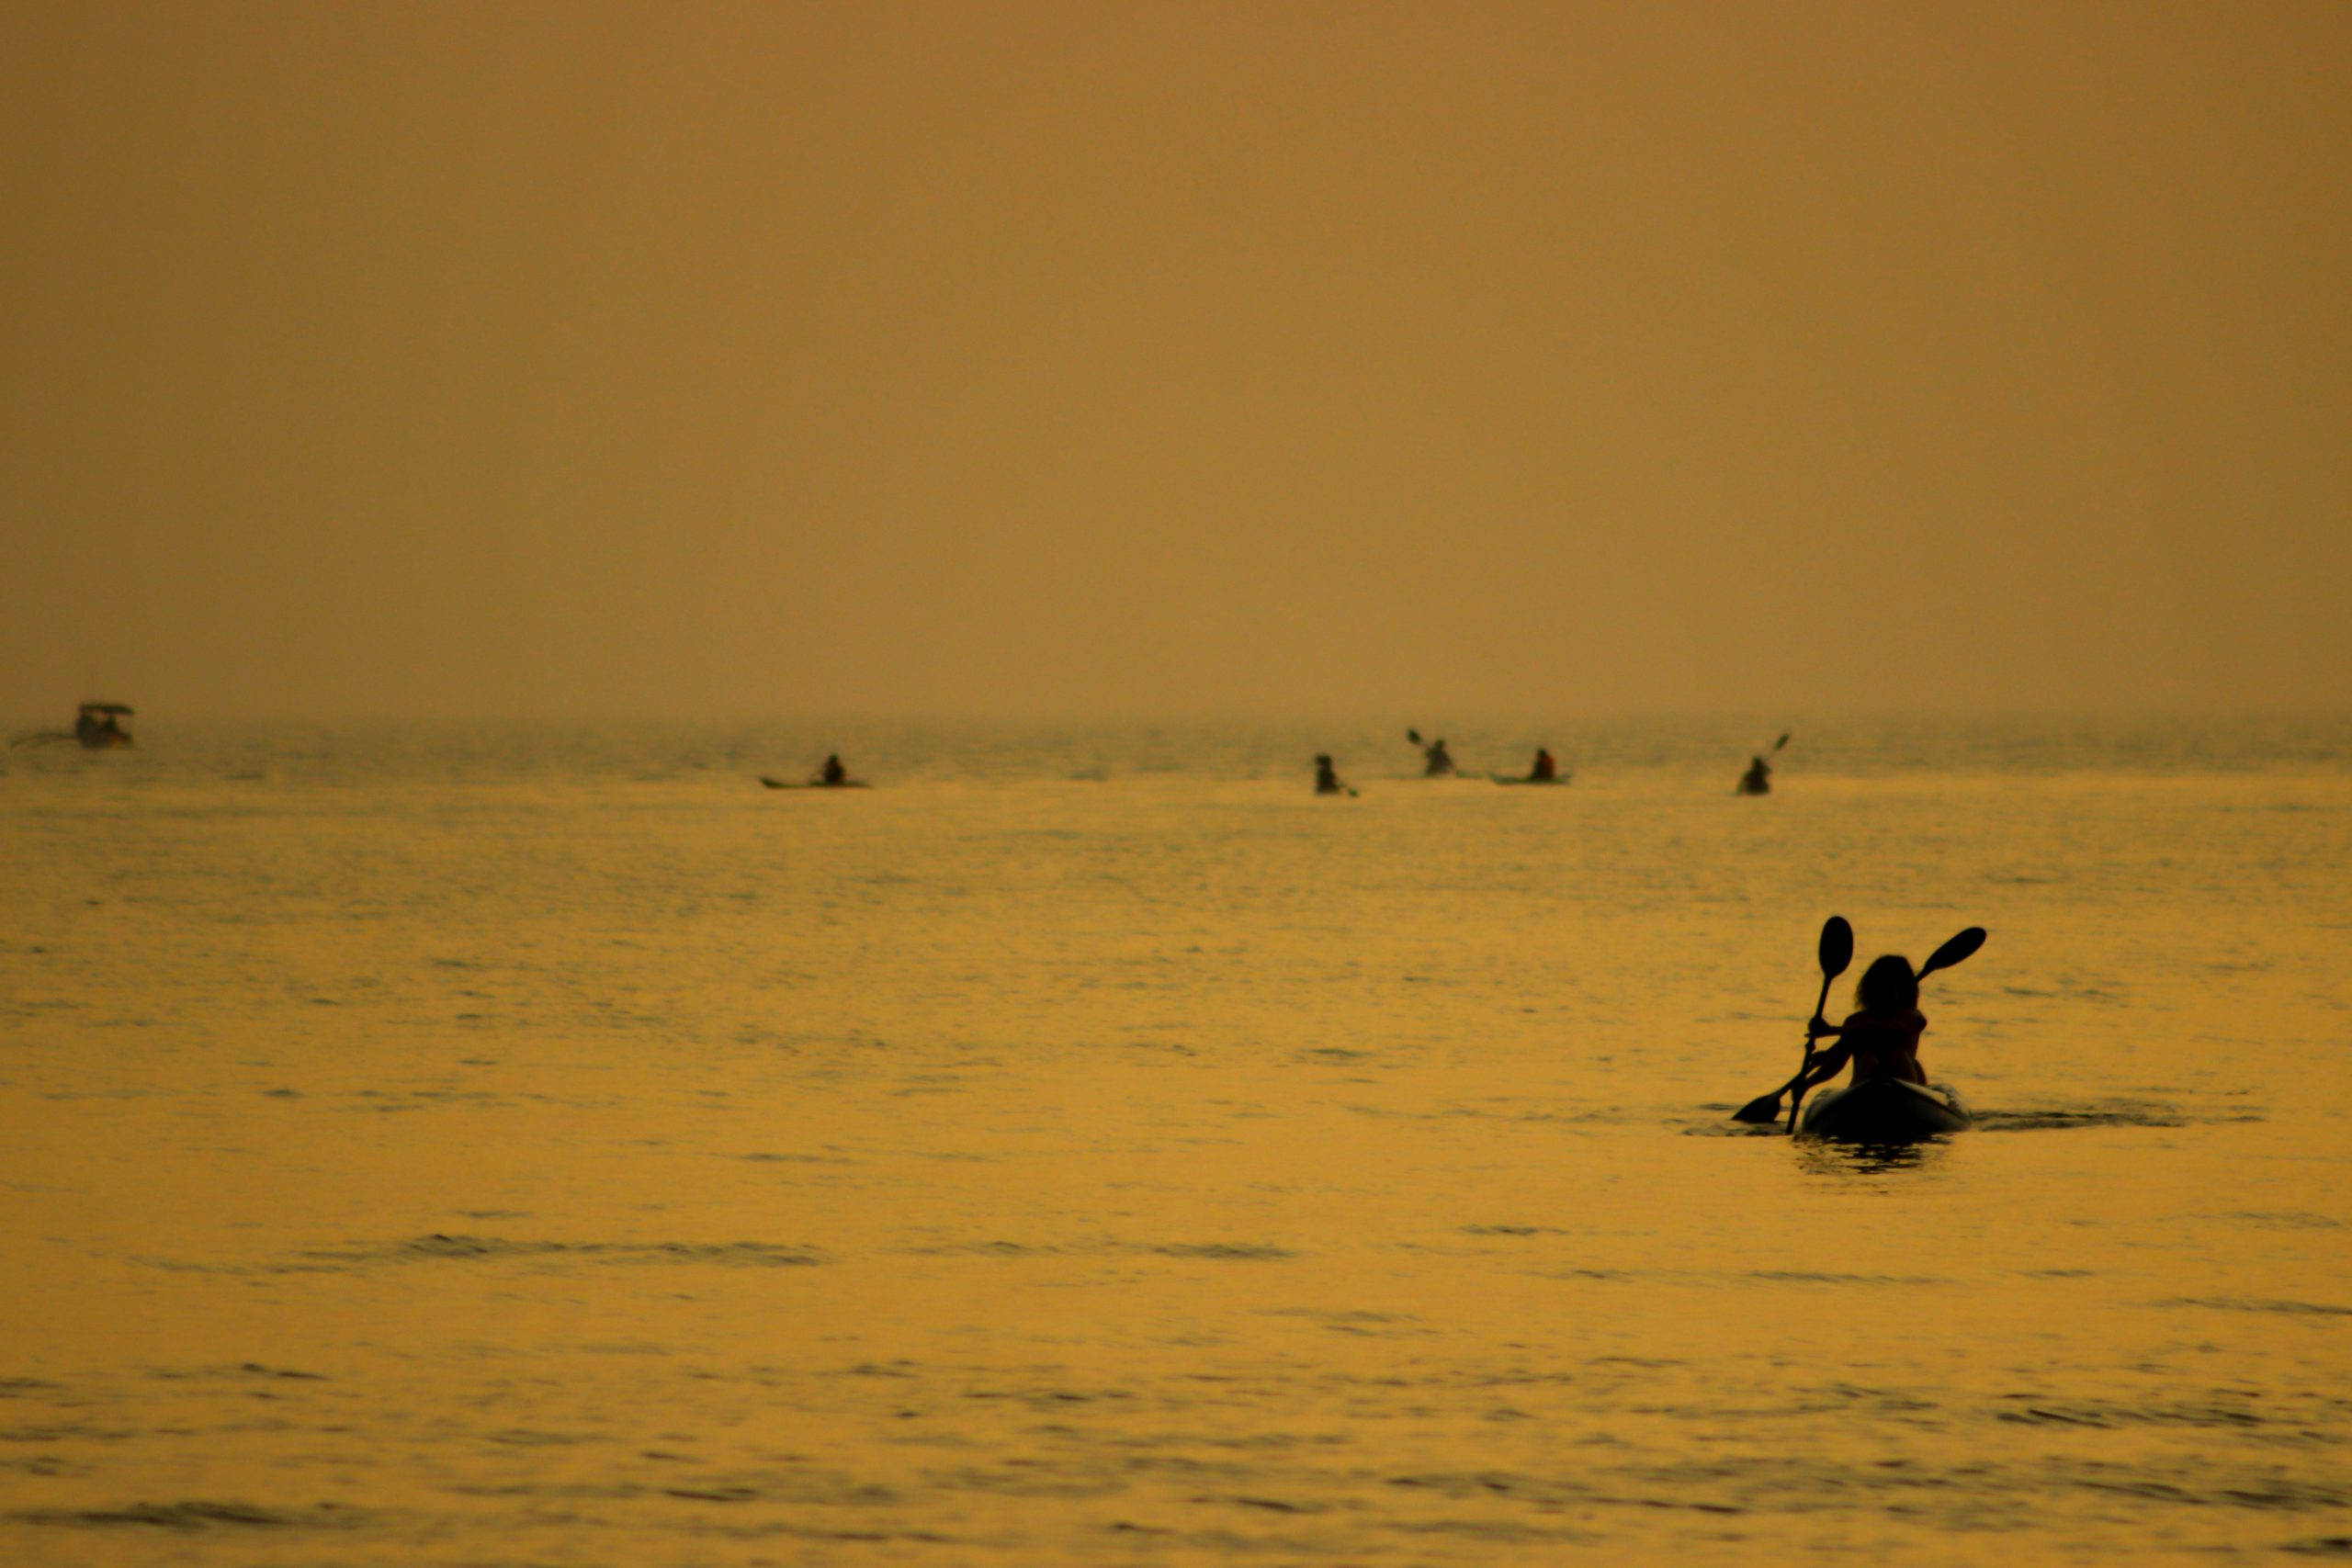 Kayaking in sea during evening hours